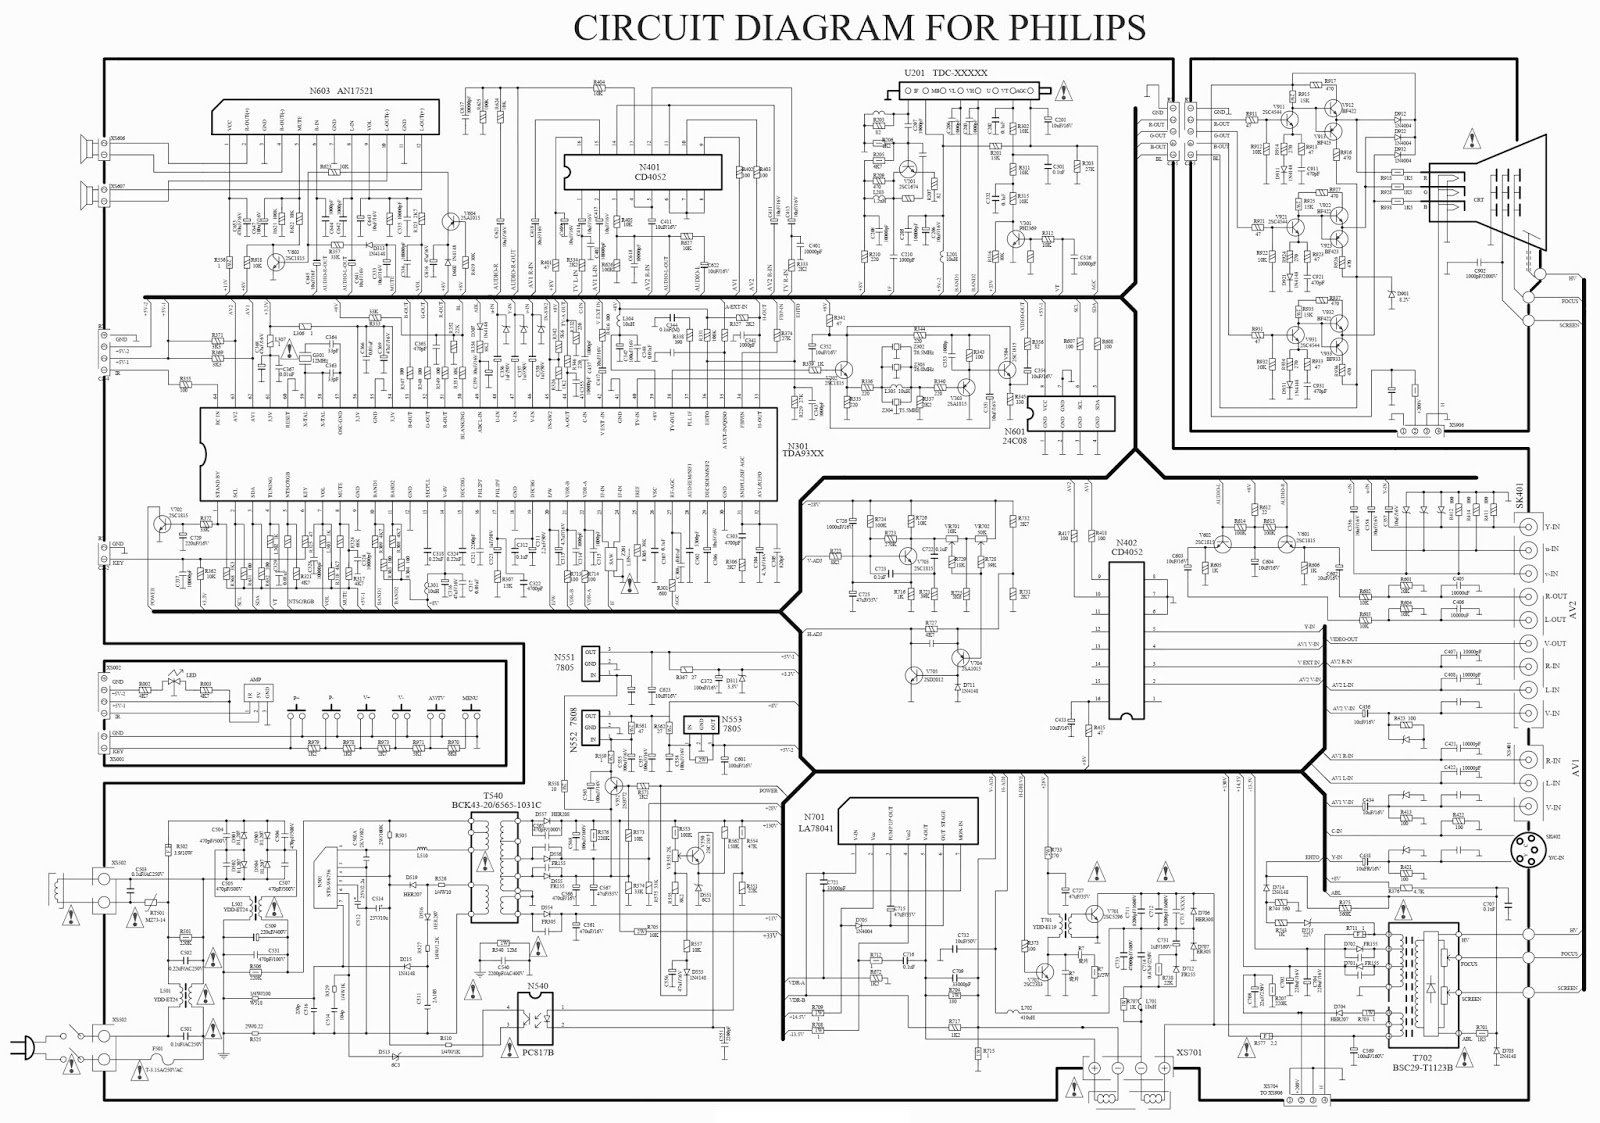 Philips Color Tv Circuit Diagram Tda93xx Str W6756 Homenol Ipad 2 Logic Board